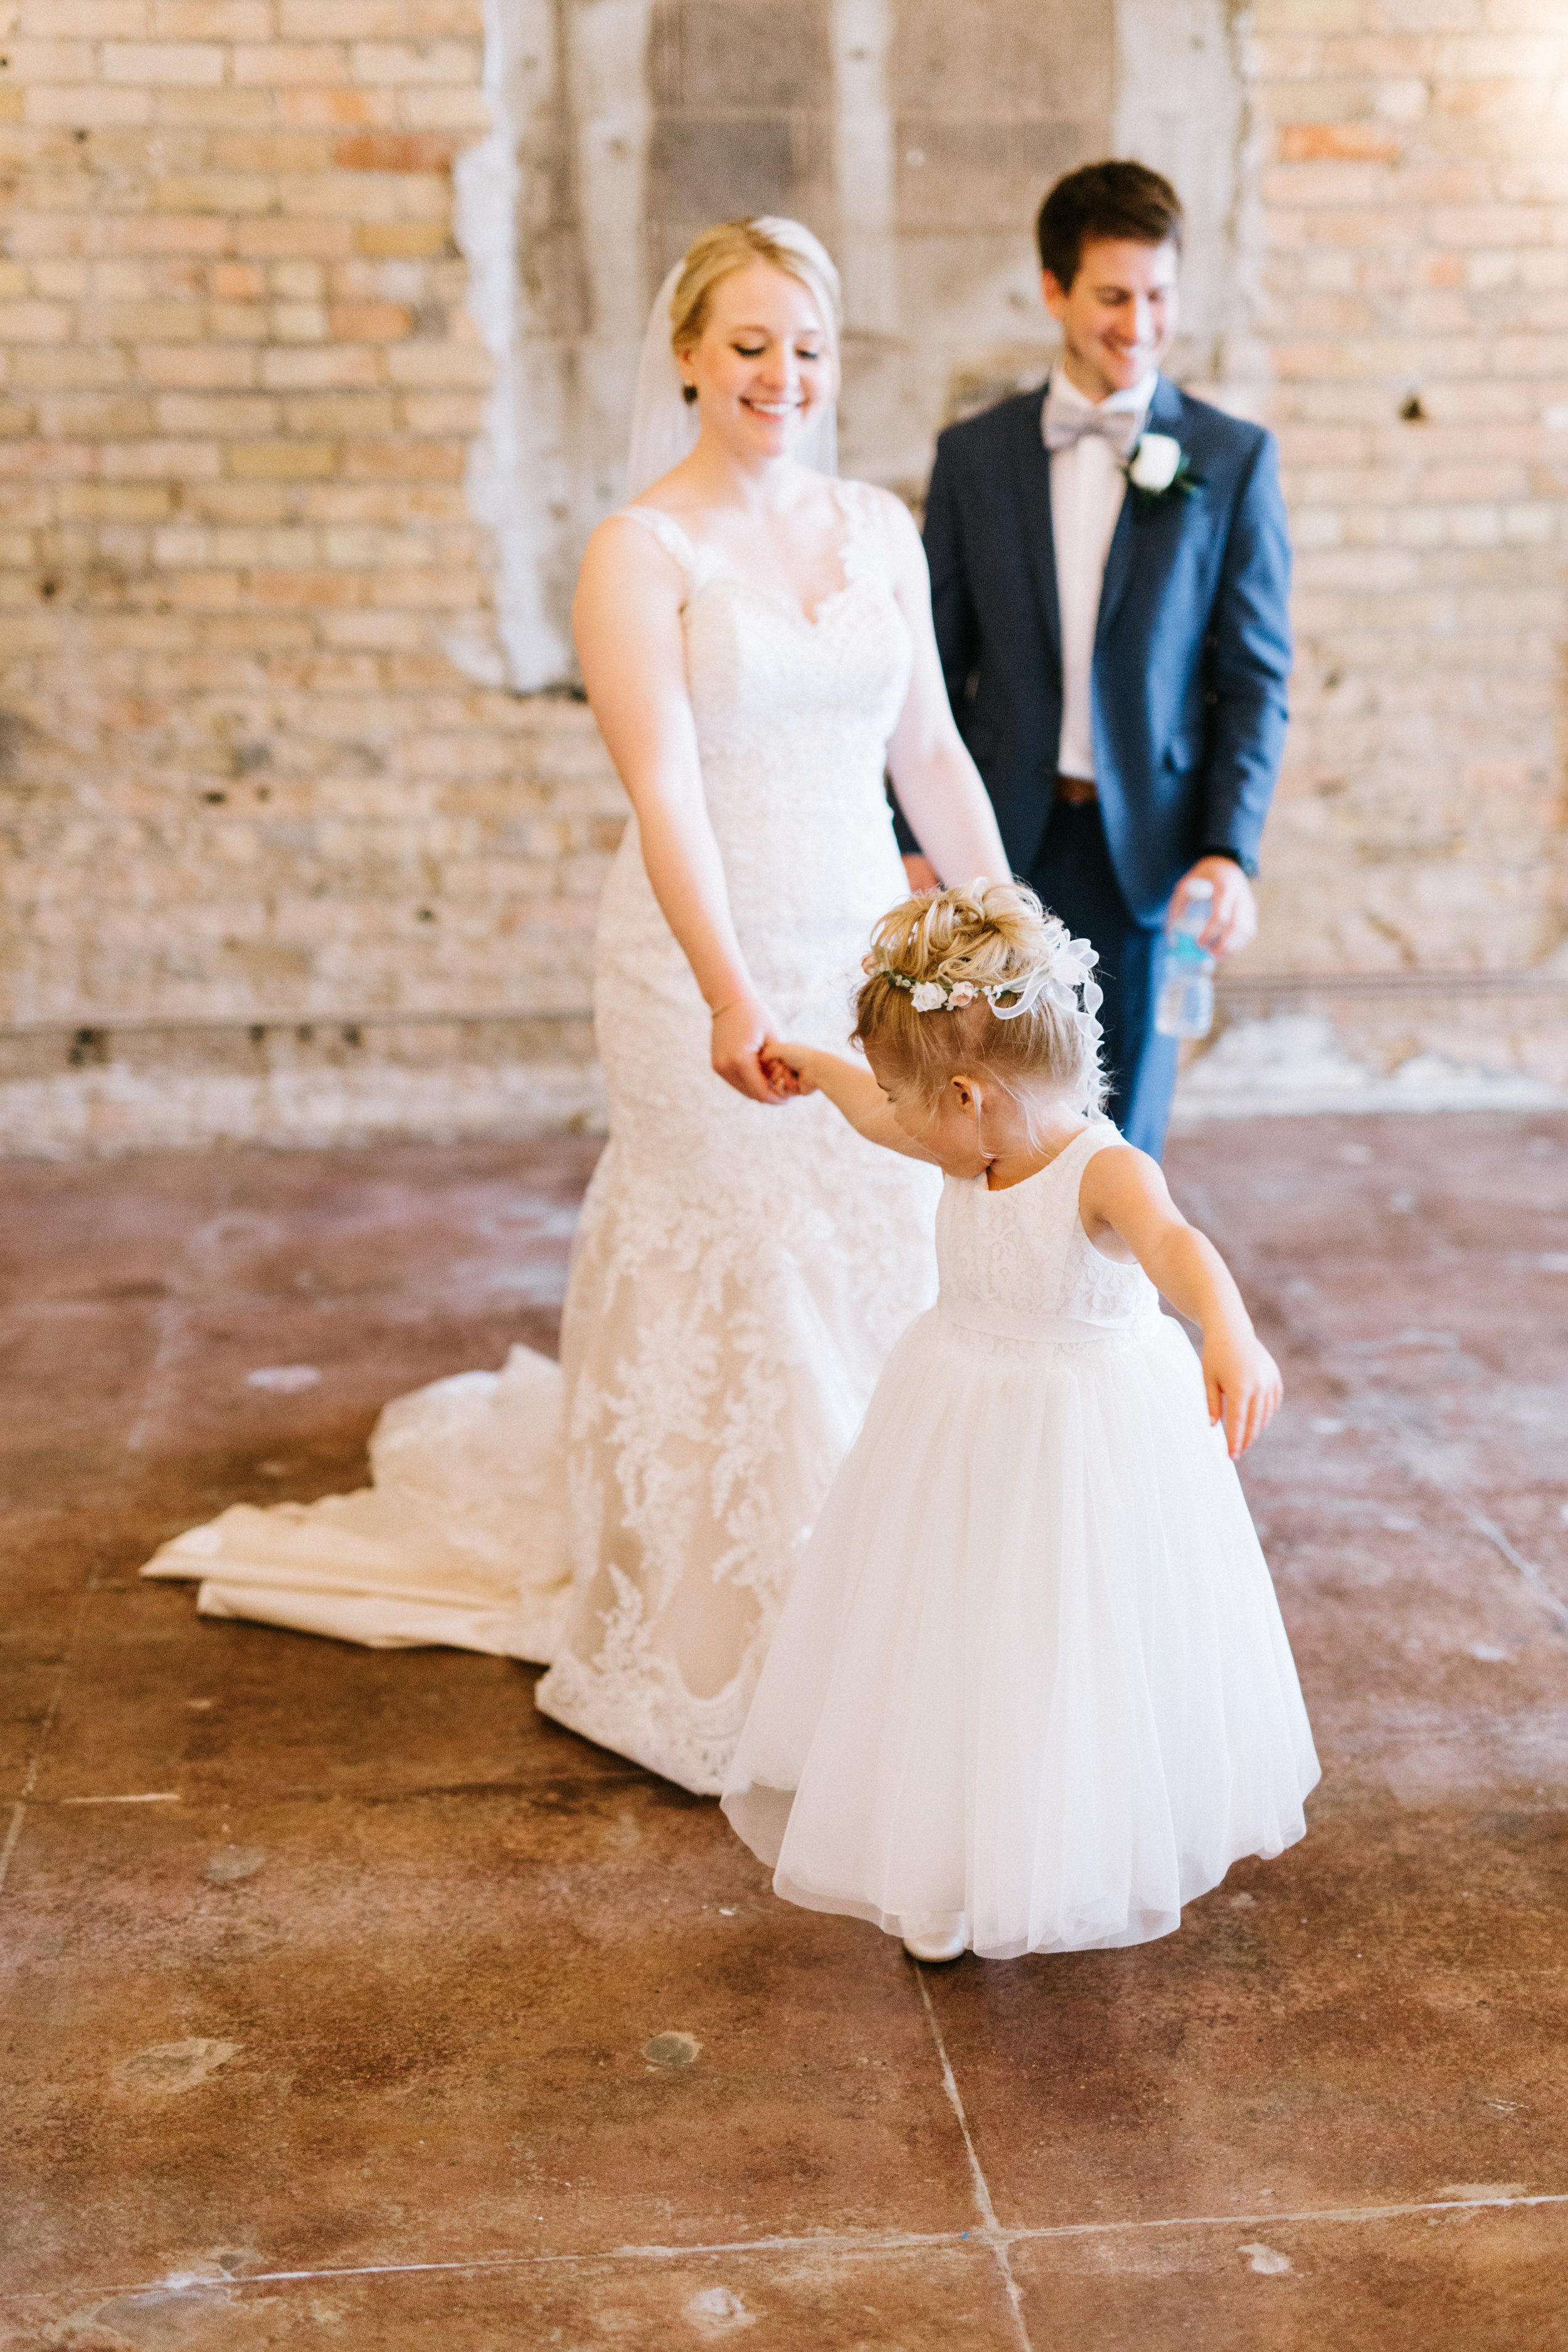 Lydia + Michael Sixpence Events day of coordinating client | Loring Social | Kate Becker Photography | Mann Frau Videography | Minted wedding stationery | flower girl fun with bride | industrial wedding venue with exposed brick and concrete floor